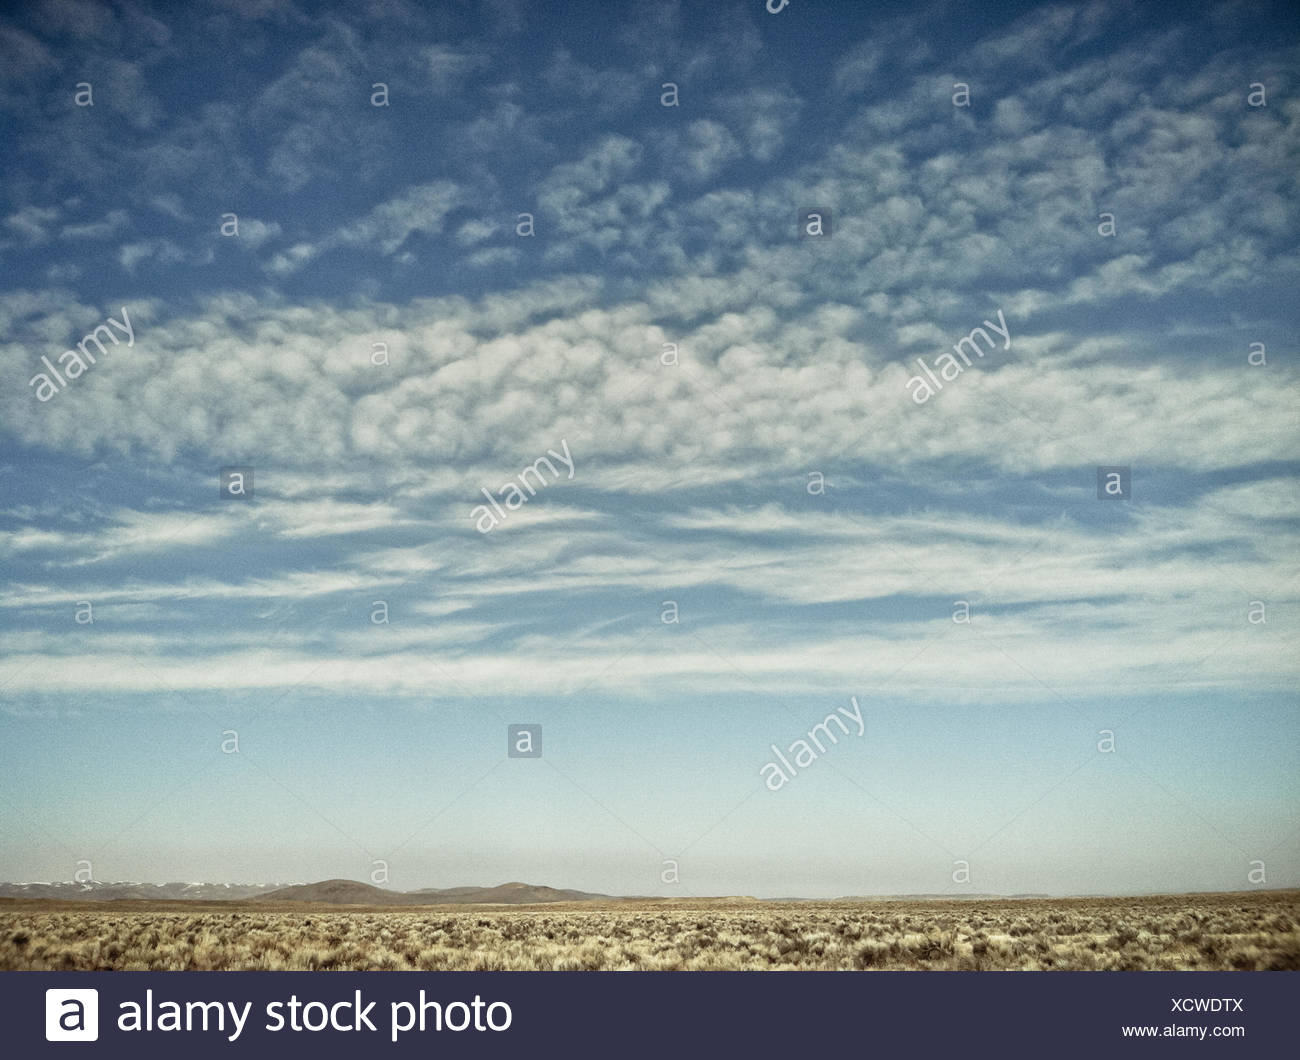 Clouds over desert - Stock Image